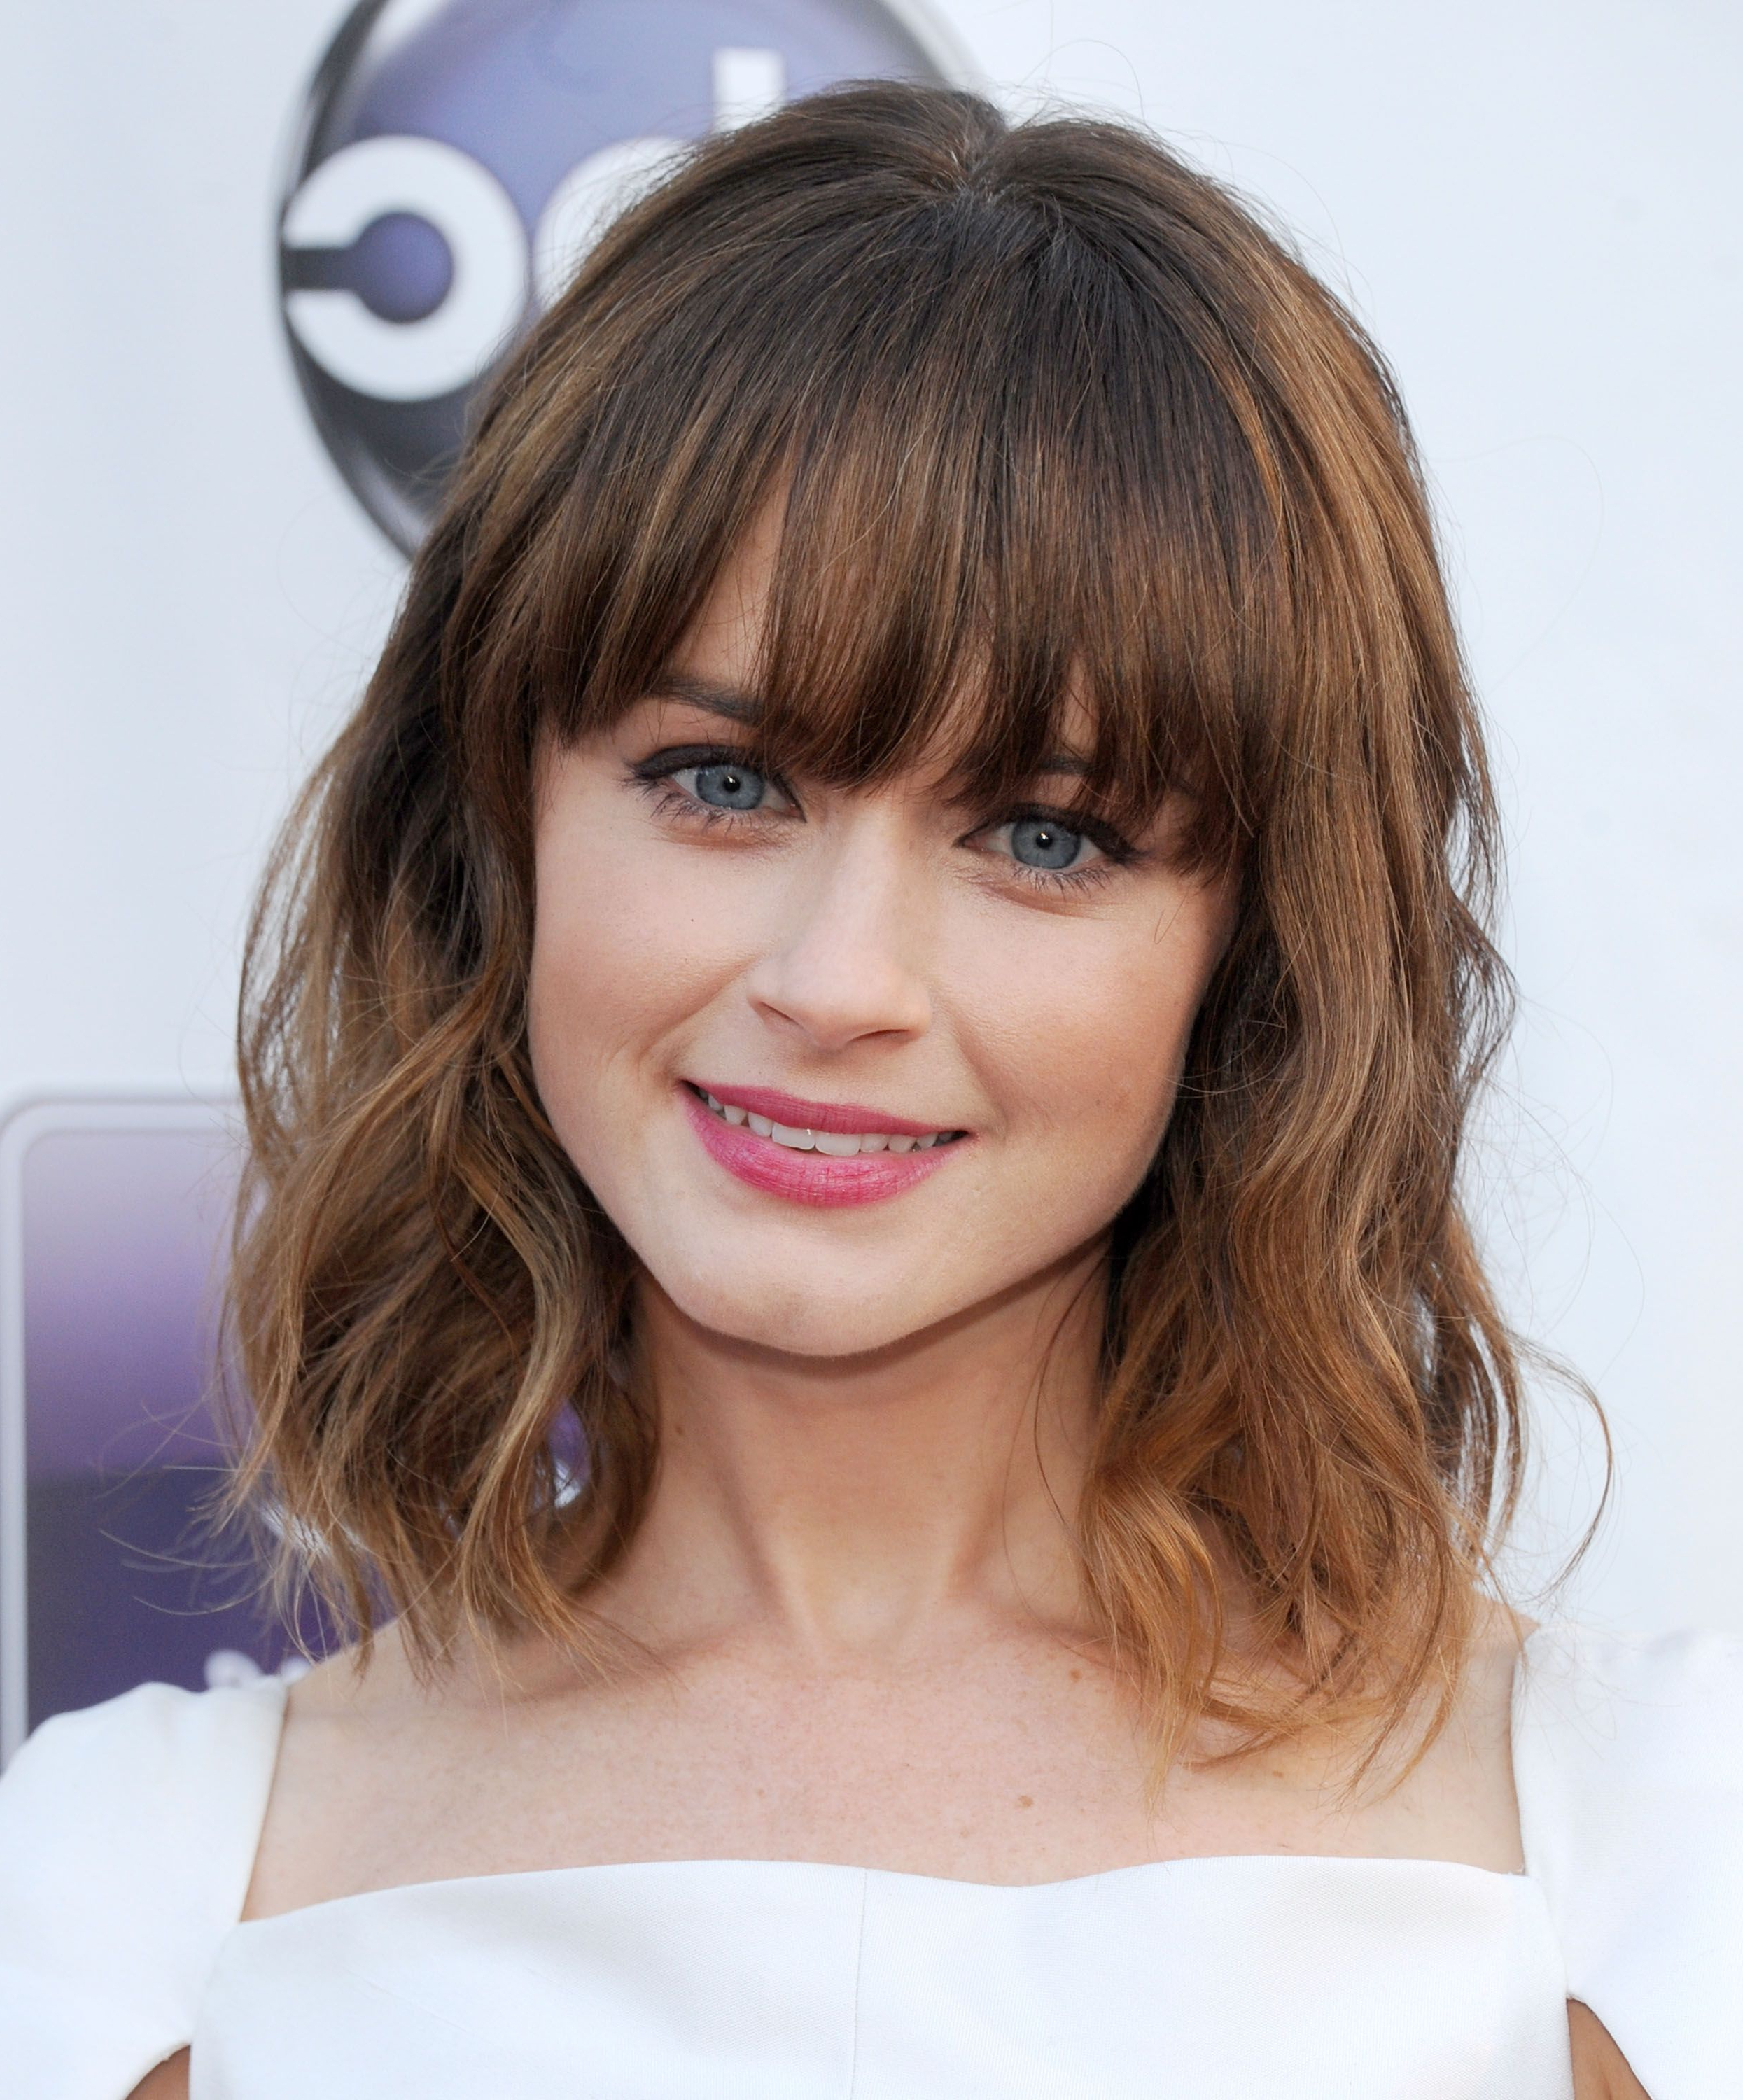 35 Best Hairstyles With Bangs – Photos Of Celebrity Haircuts With Bangs Intended For Latest Full Fringe Medium Hairstyles (View 3 of 20)